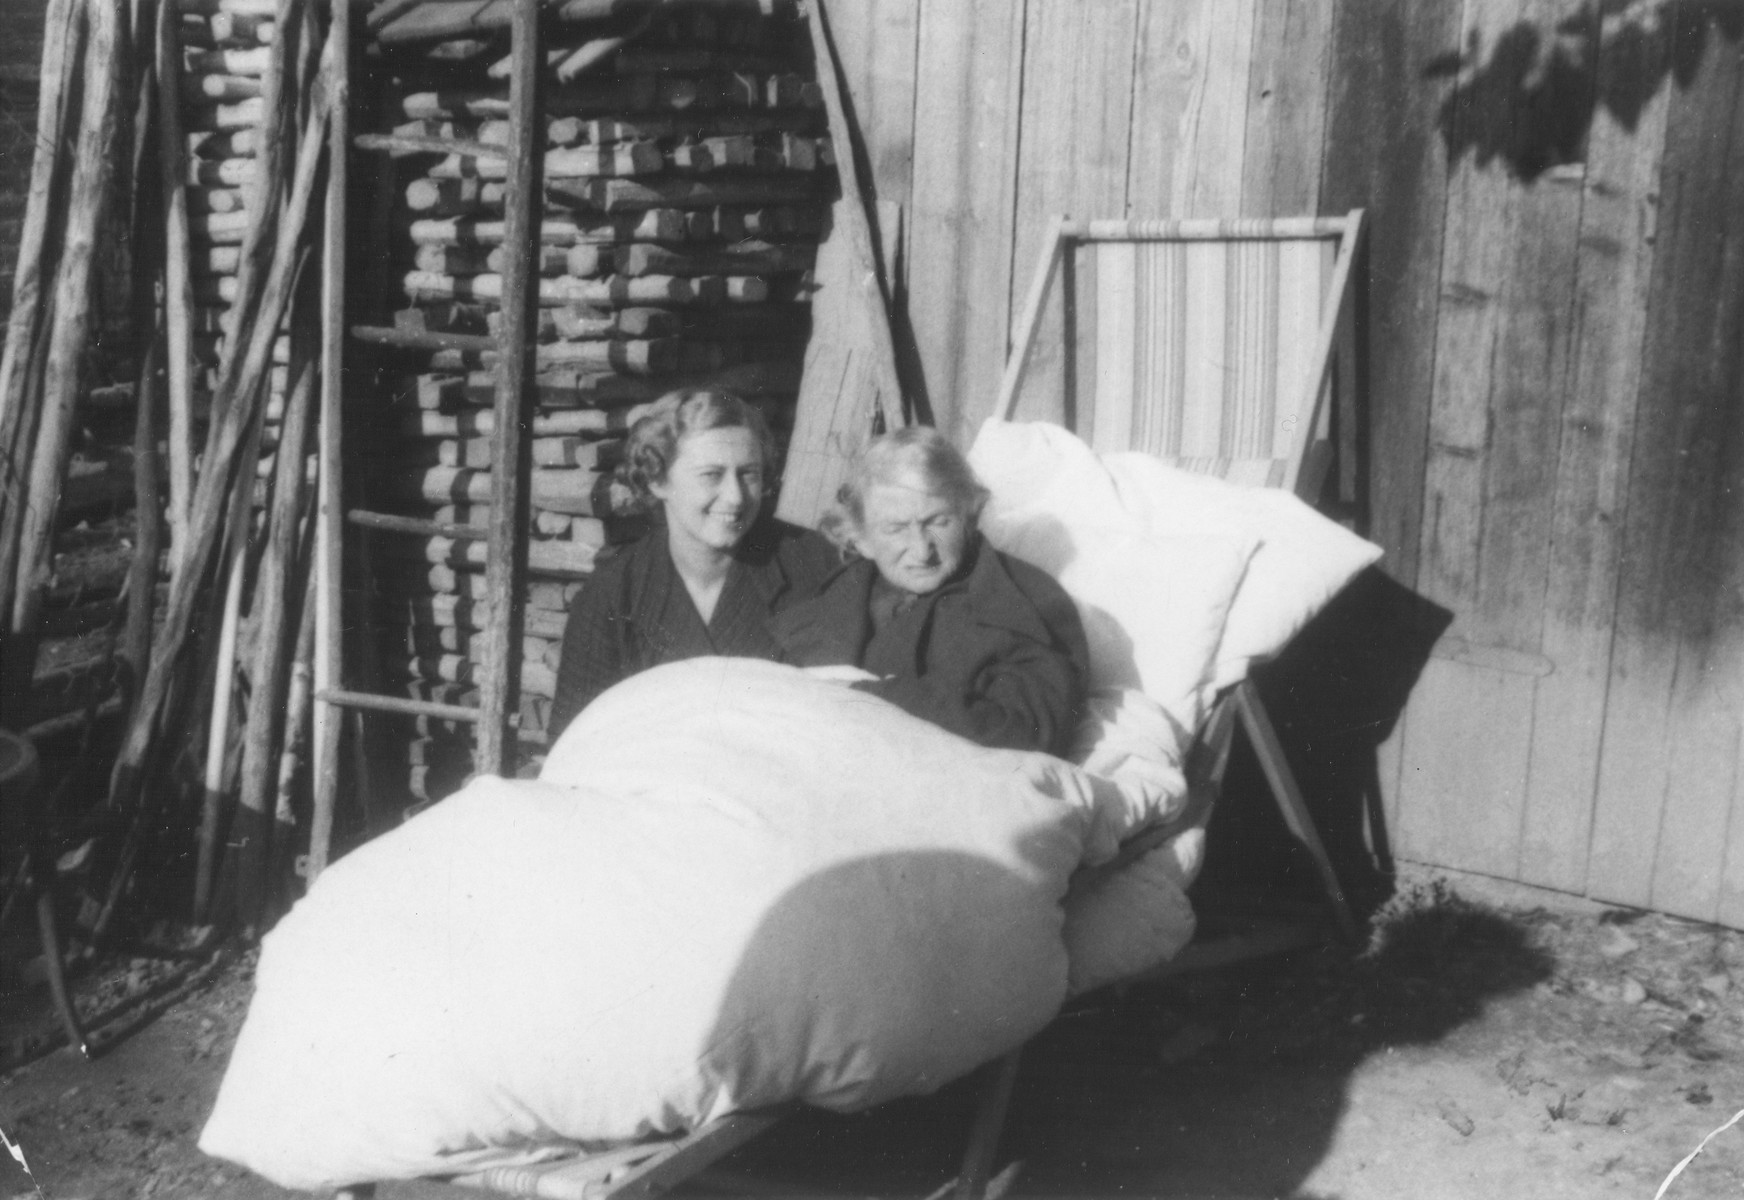 Lili Koenig poses next to her mother Sari Vermes who is sitting outside bundled up in comforters and pillows.